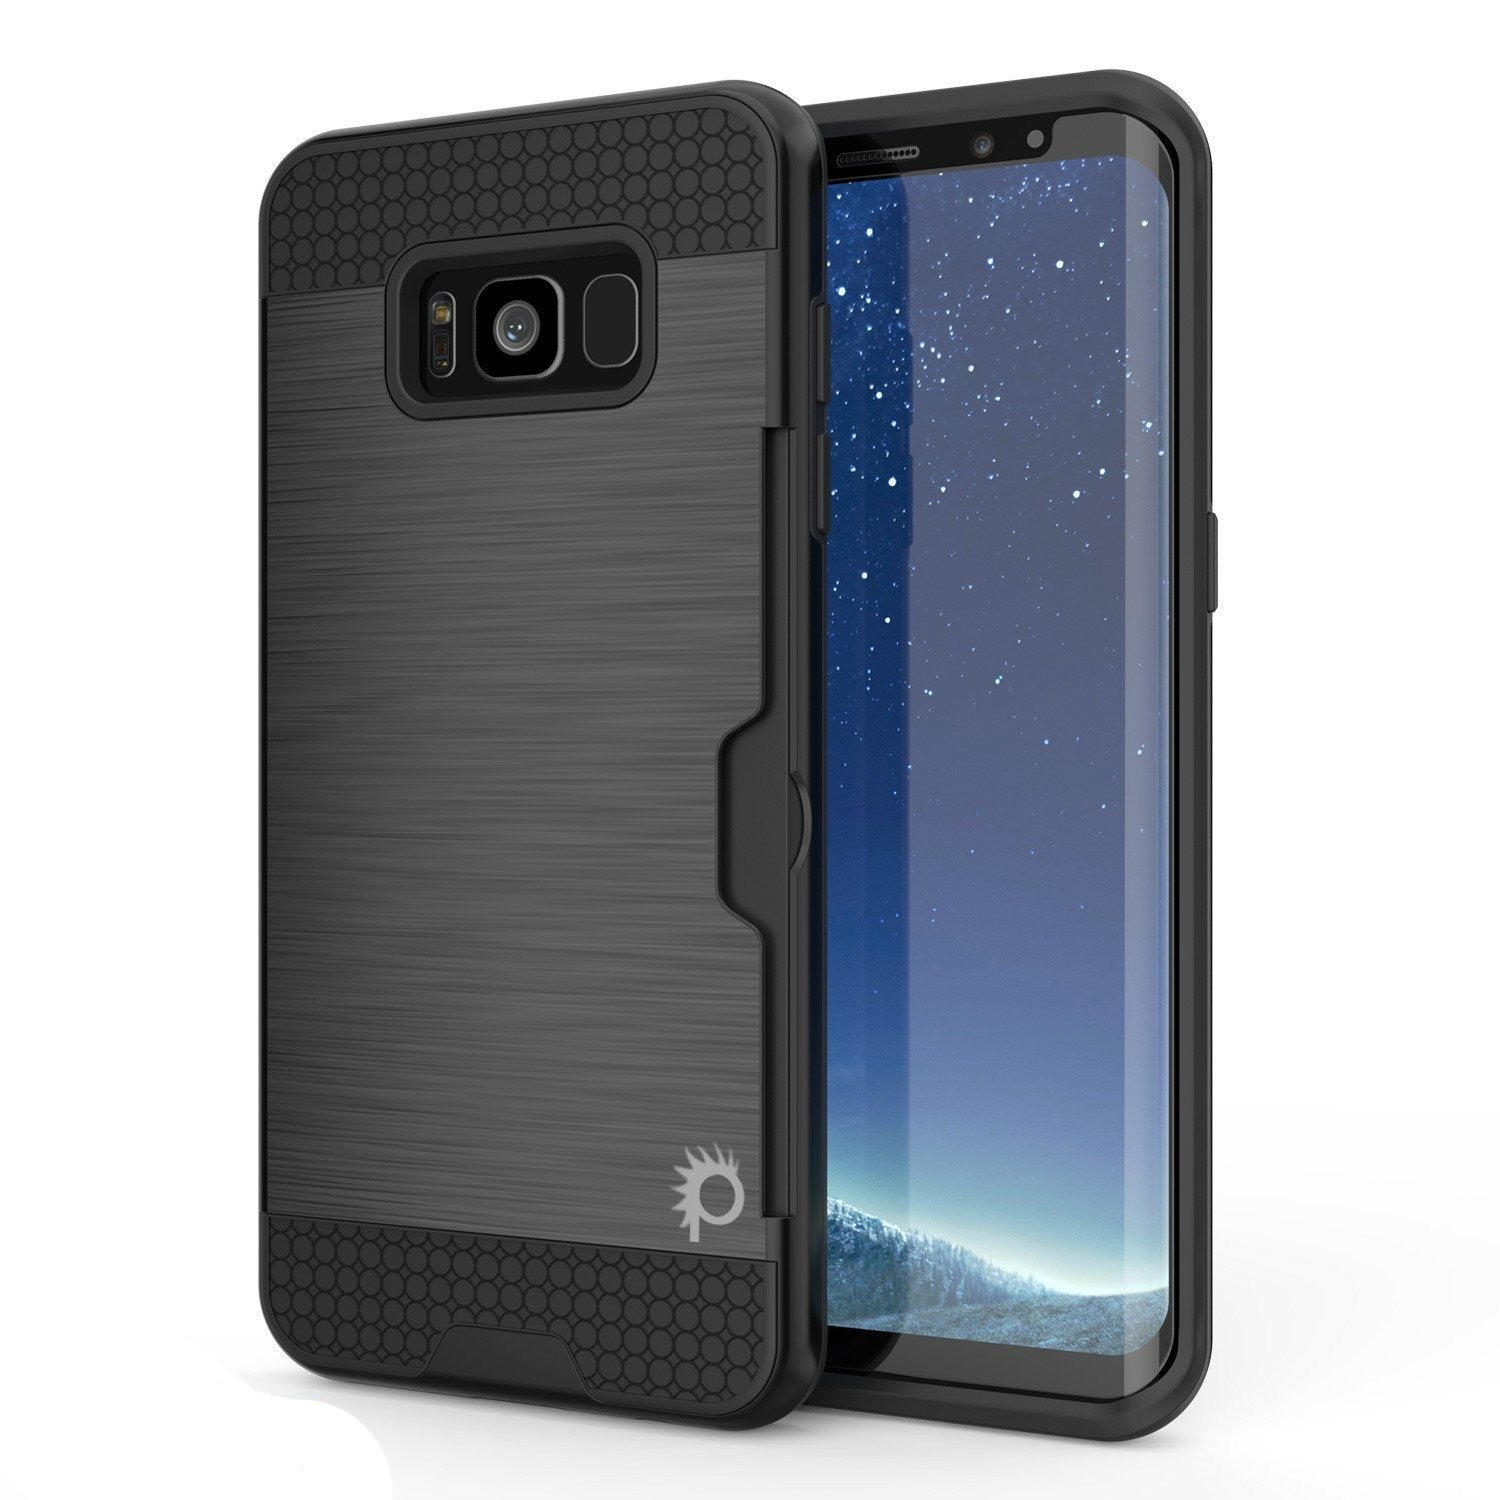 Galaxy S8 Case, PUNKcase [SLOT Series] [Slim Fit] Dual-Layer Armor Cover w/Integrated Anti-Shock System, Credit Card Slot & PUNKSHIELD Screen Protector for Samsung Galaxy S8 [Black]